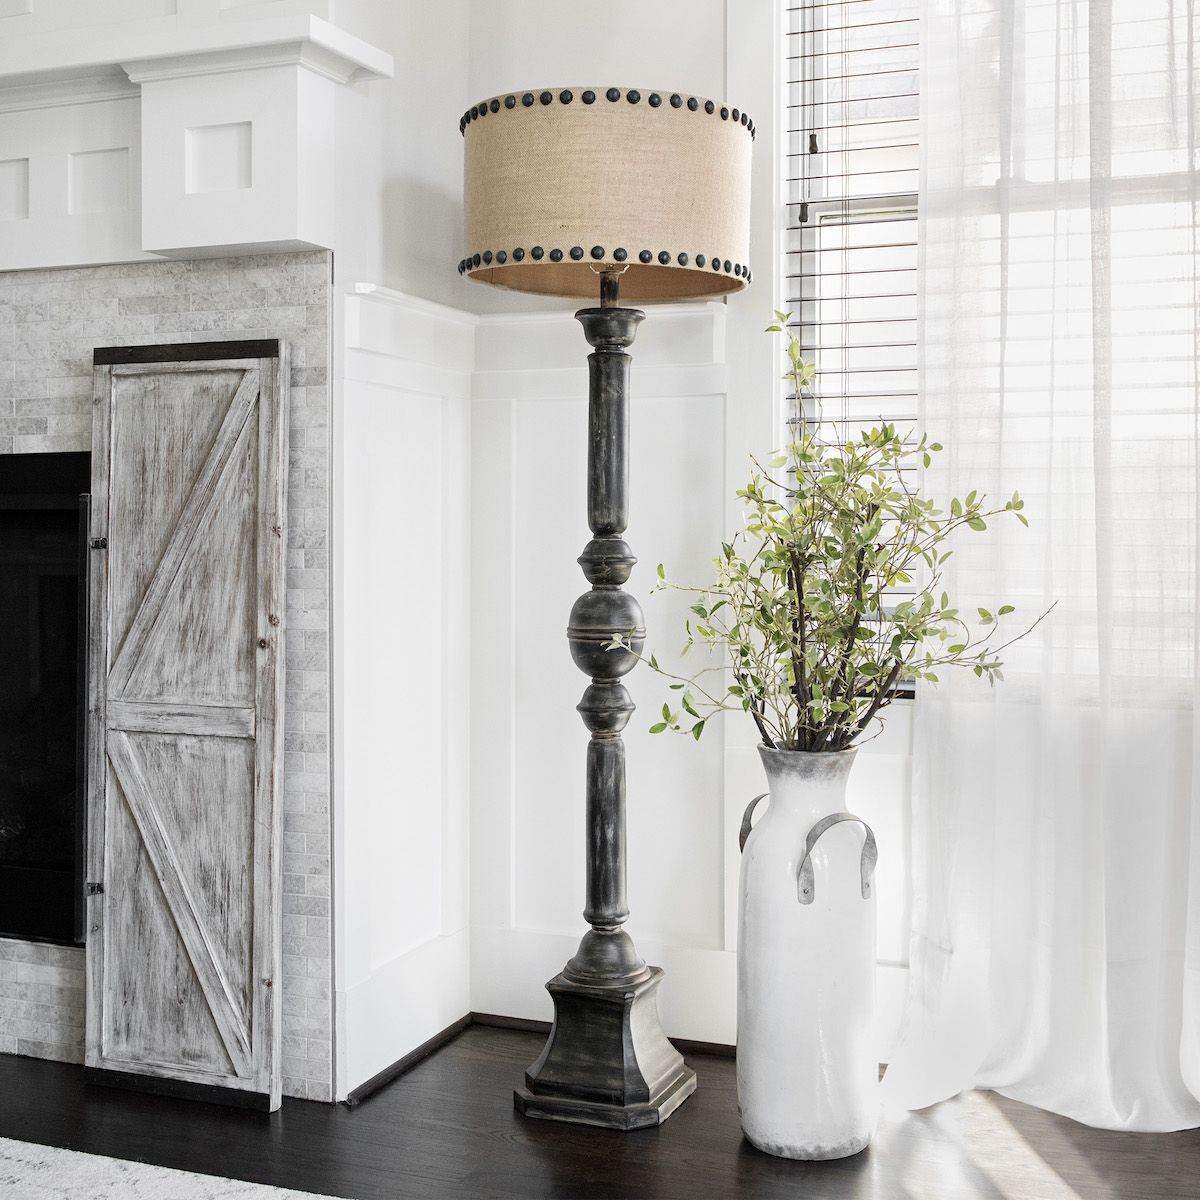 Distressed oliver baluster floor lamp in 2020 farmhouse